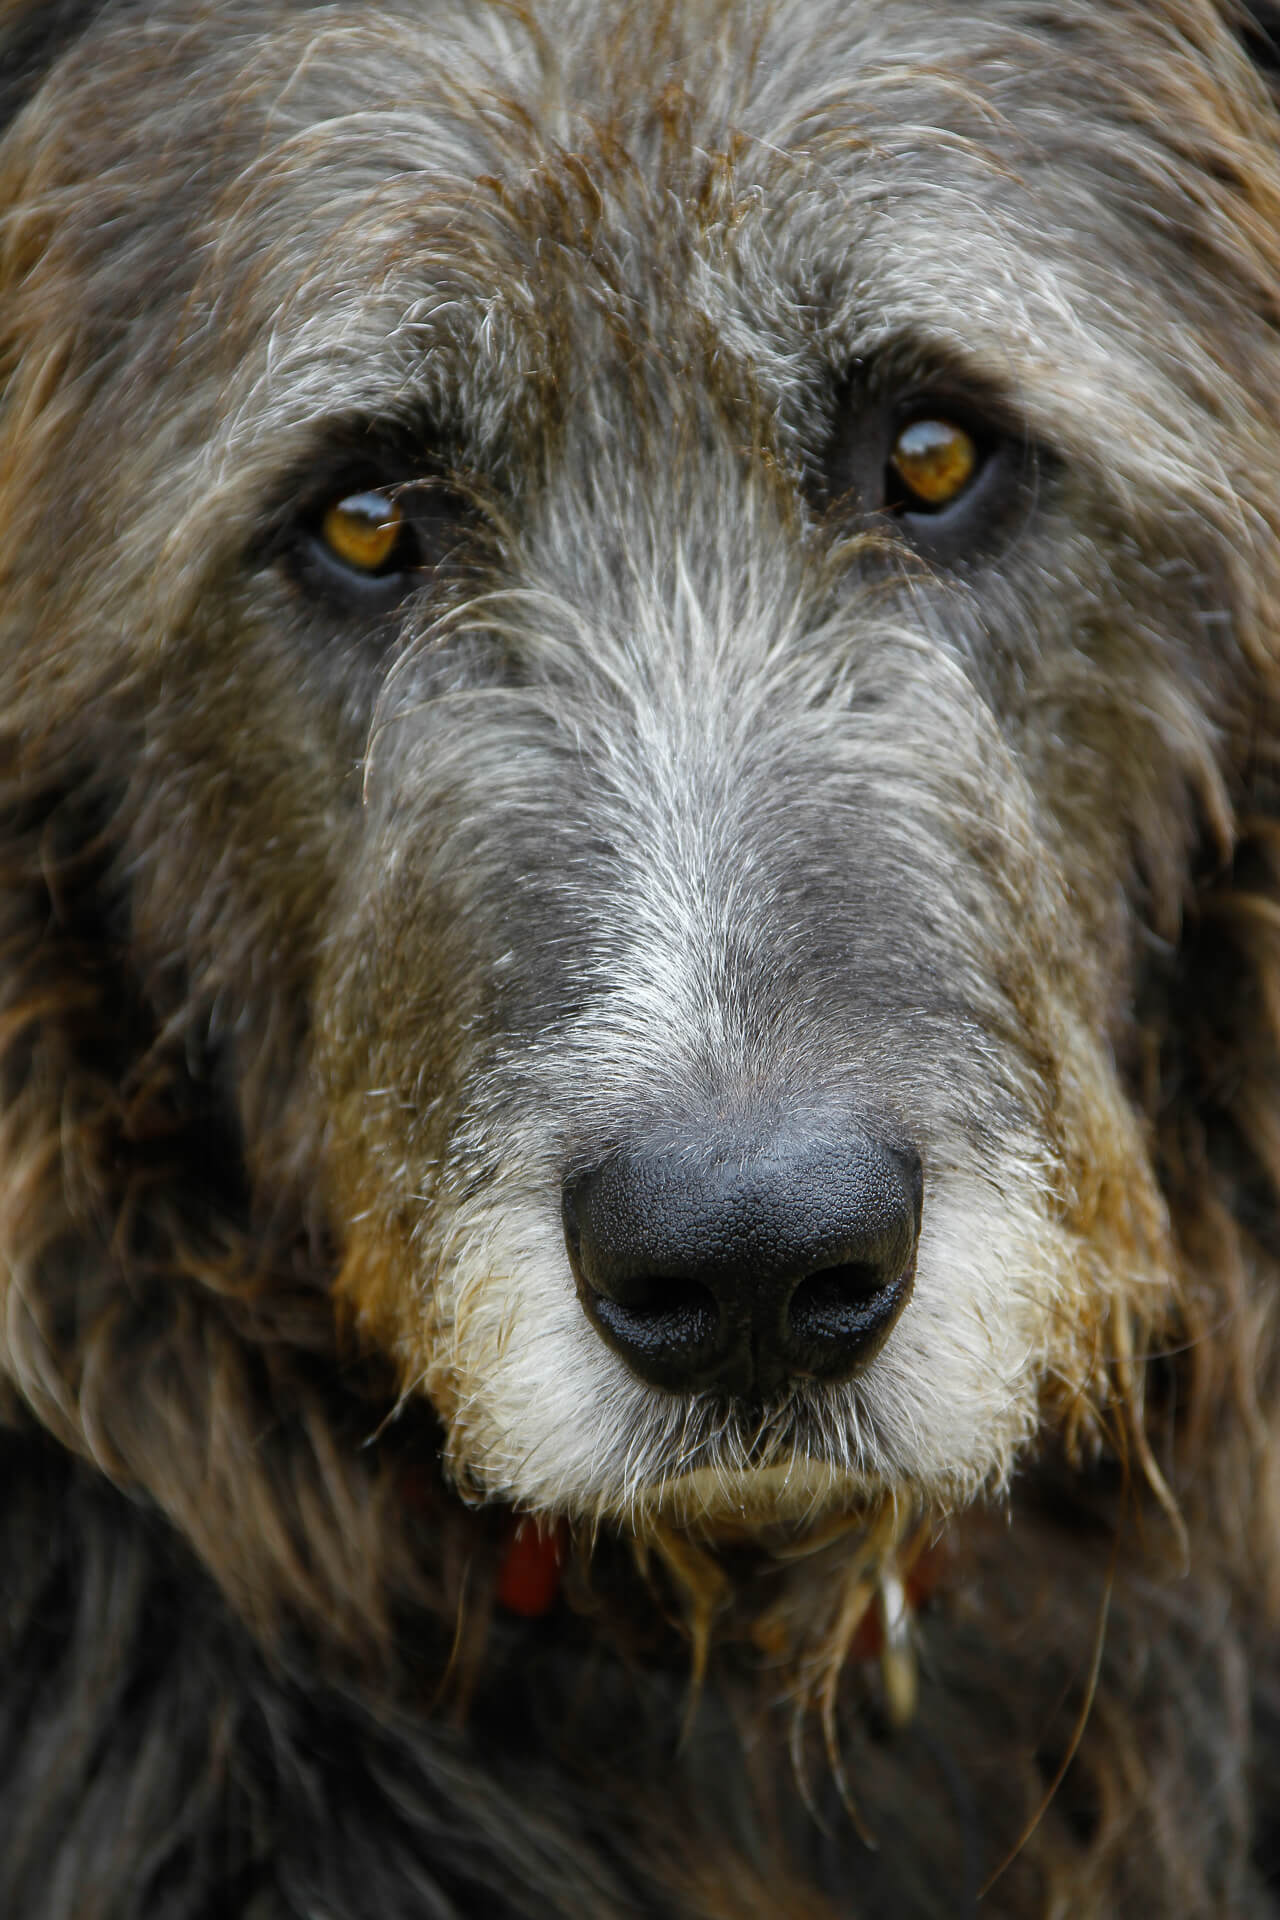 Close up picture of Dexter Wooluffs face. Dexter was a Beautiful Black Irish Wolfhound with a Huge Soul, he died in 2017 aged 9.